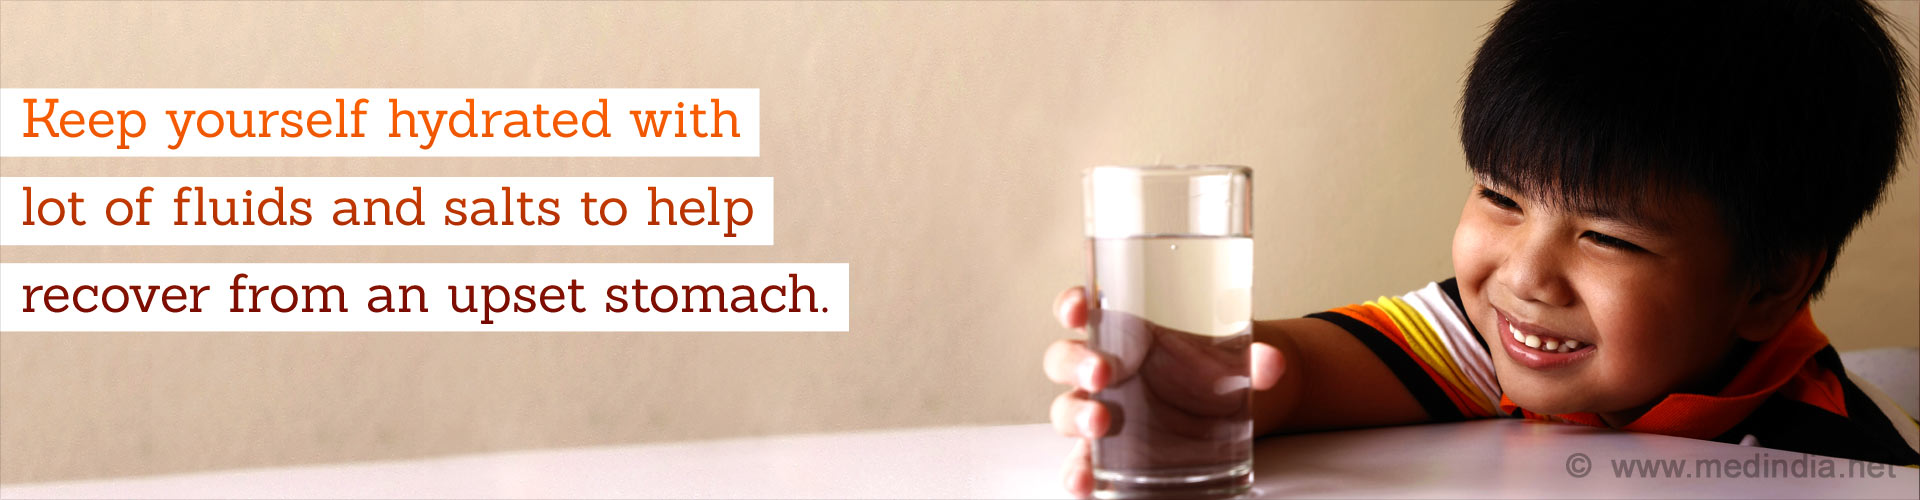 Keep yourself  hydrated with lot of fluids and salts to help recover from an upset stomach.